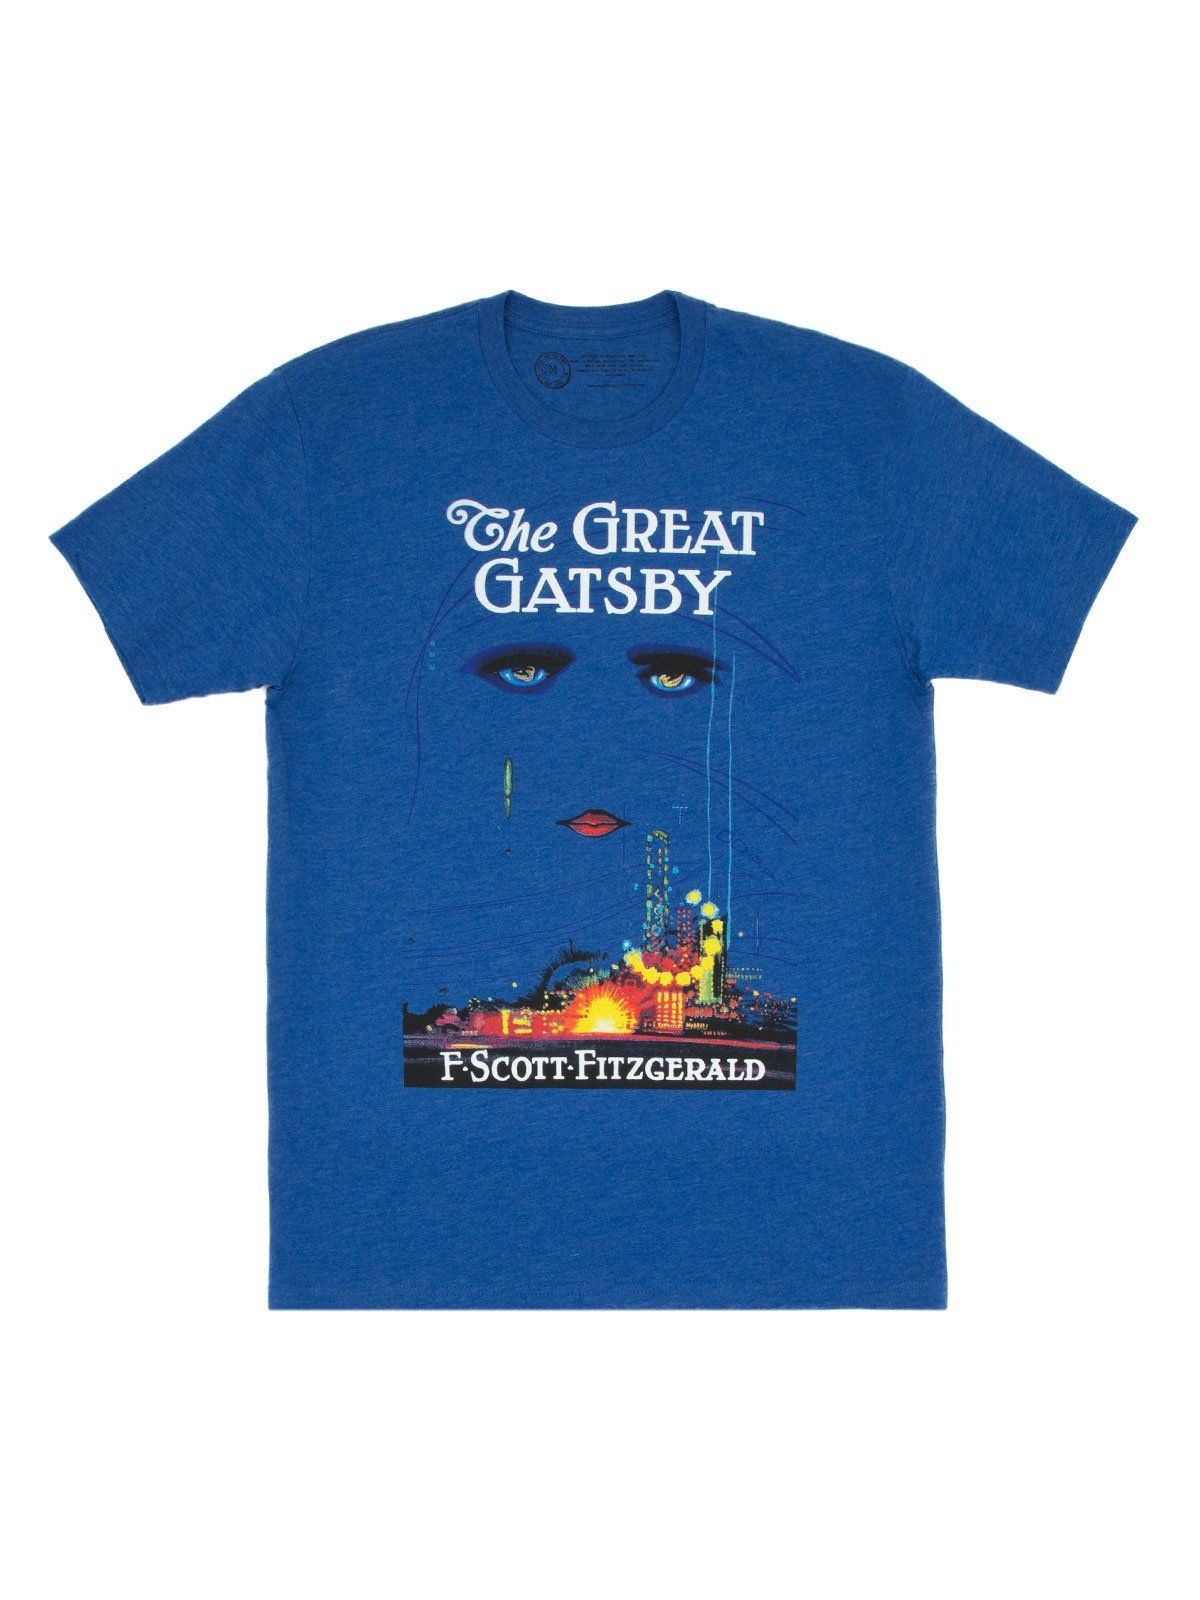 The Great Gatsby Unit Shirt